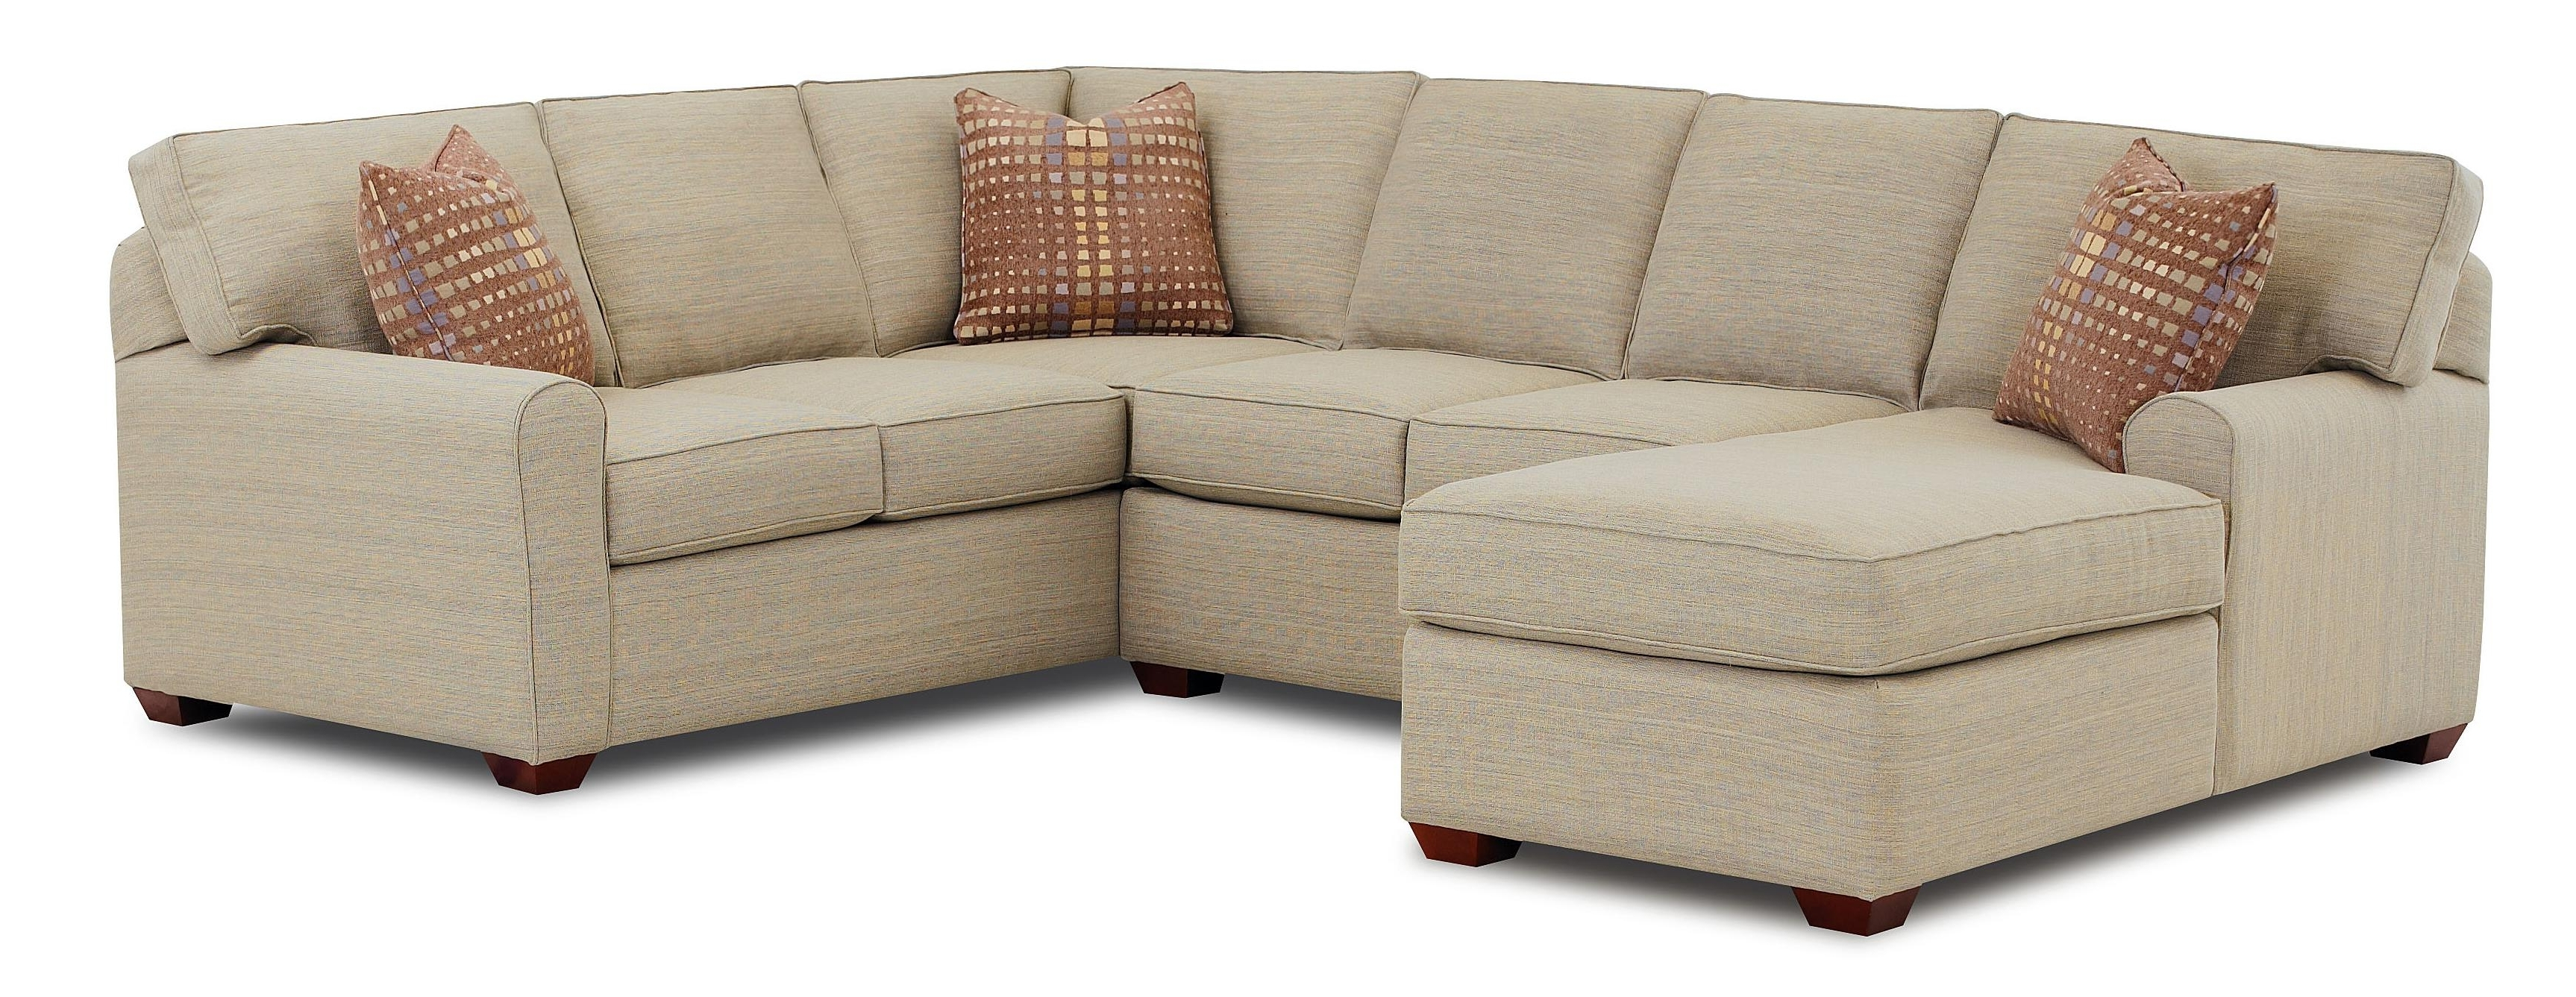 2018 Sofa Chaise Lounges In Sectional Sofa With Left Facing Chaise Loungeklaussner (View 1 of 15)